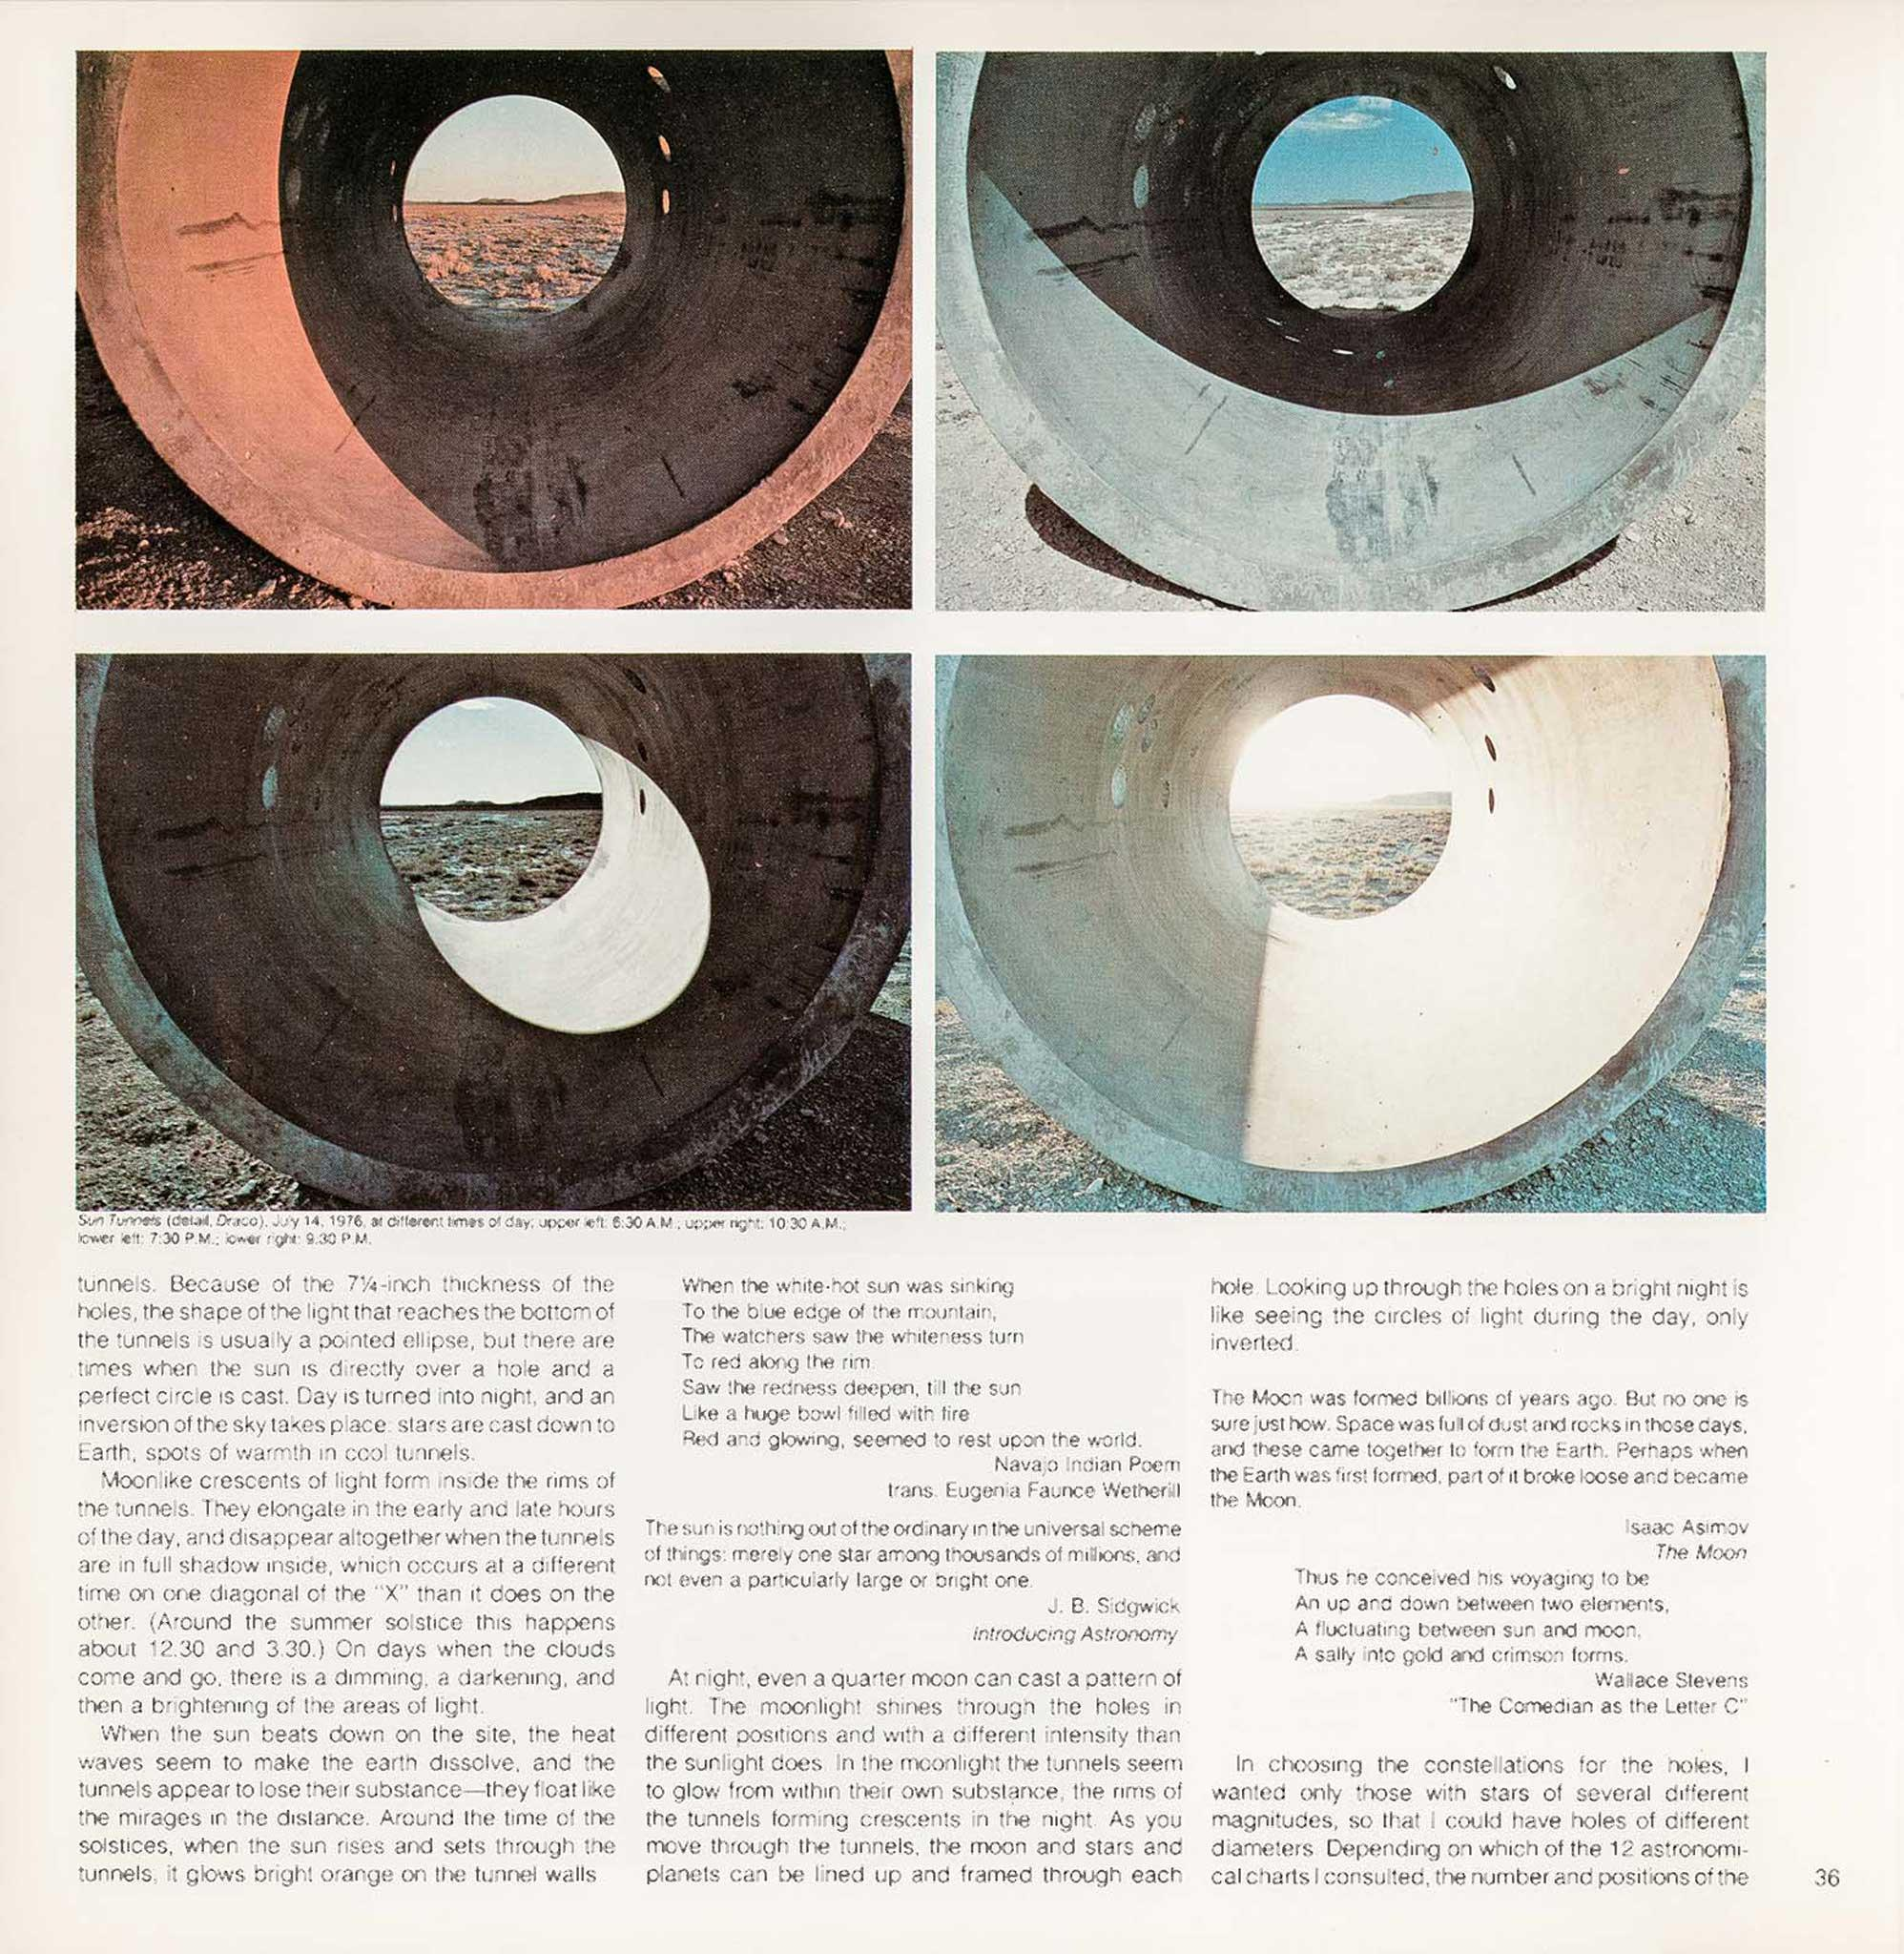 Magazine layout with four images in a grid on the top and text on the bottom. Images show changing light throughout the day inside large circular concrete tunnels.